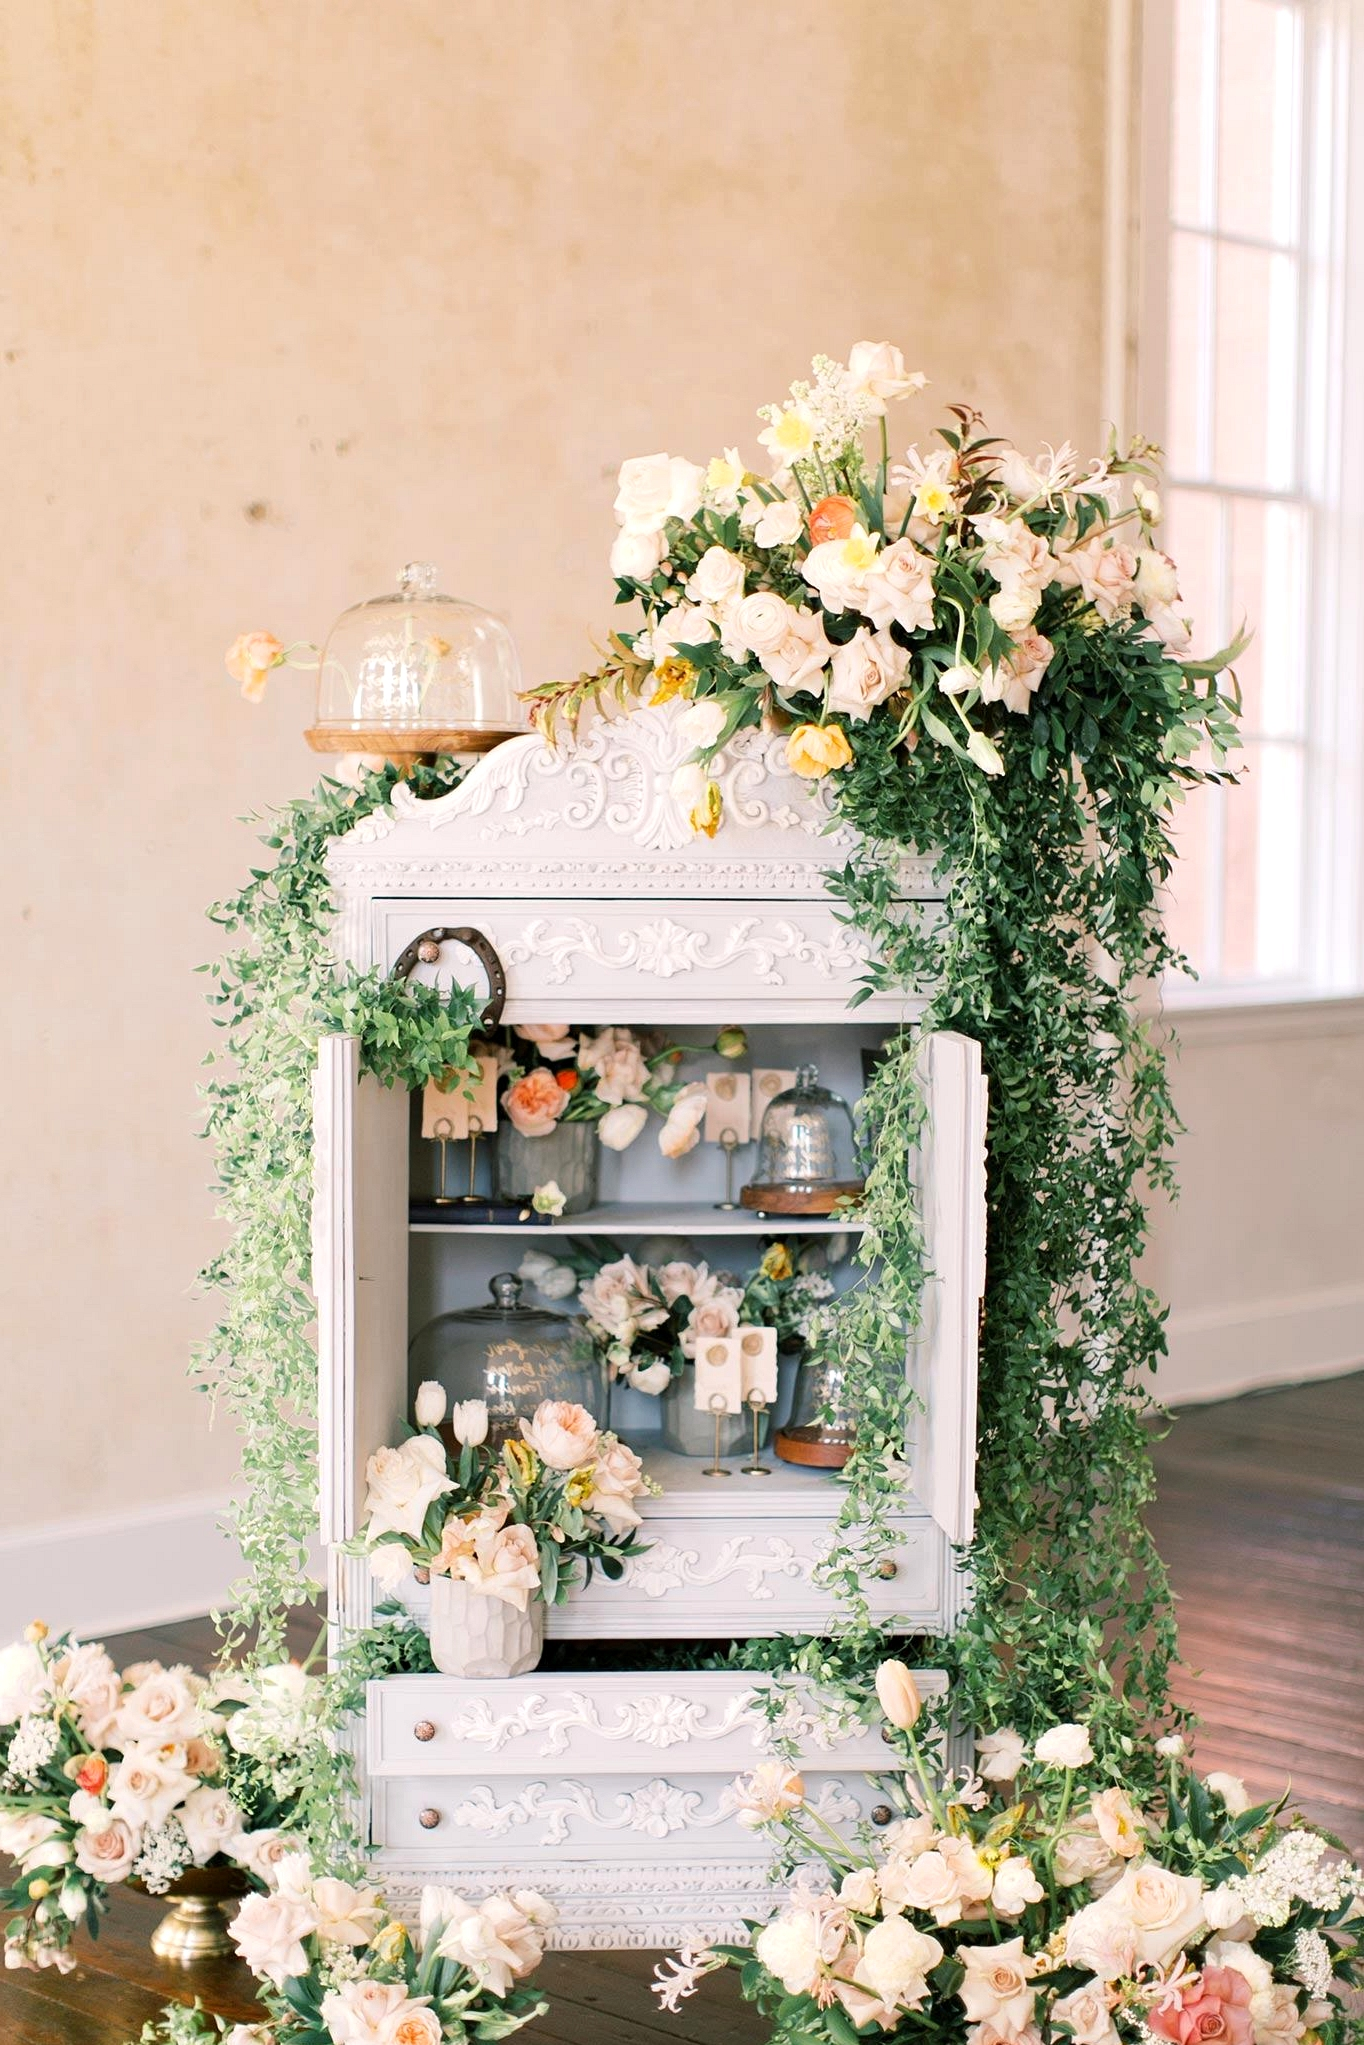 calligraphed cloche seating chart in a shabby chic bookshelf with greenery and fresh flowers